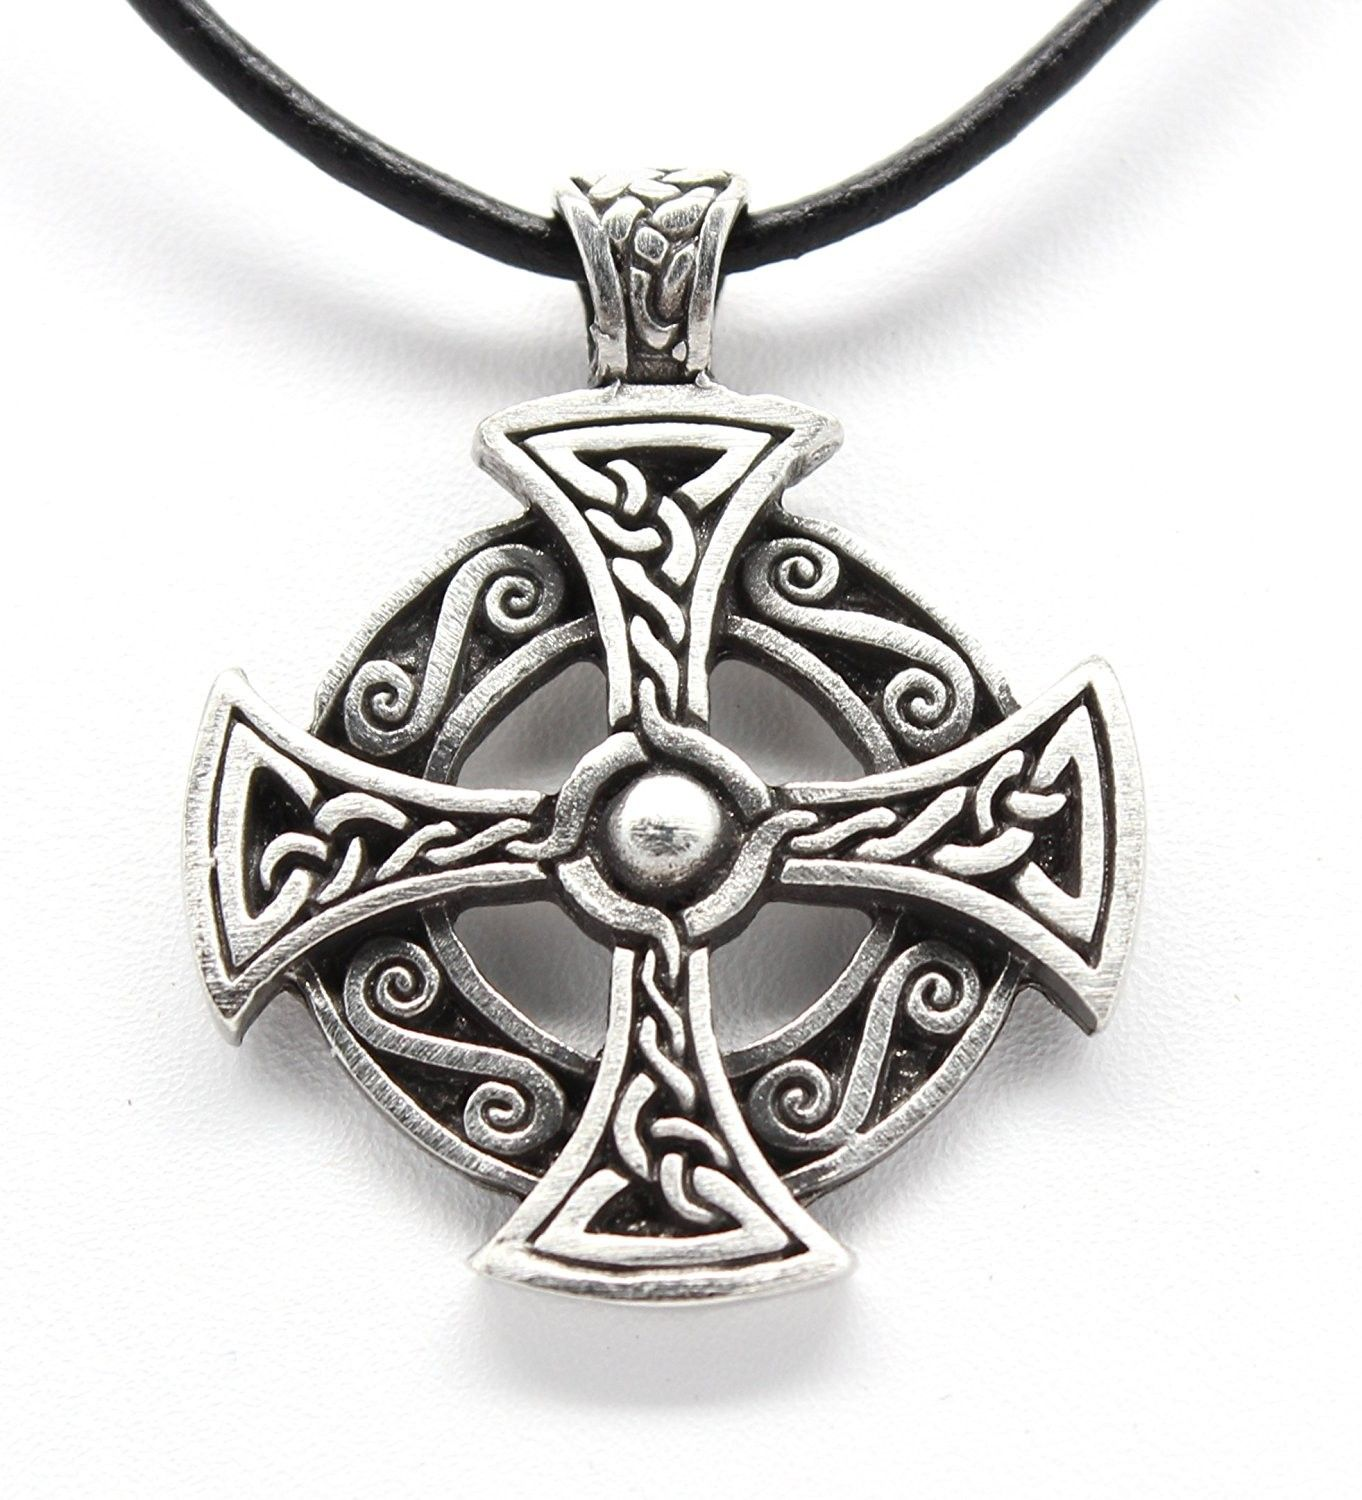 Pagan Circular Green Man Pewter Pendant on Leather Necklace